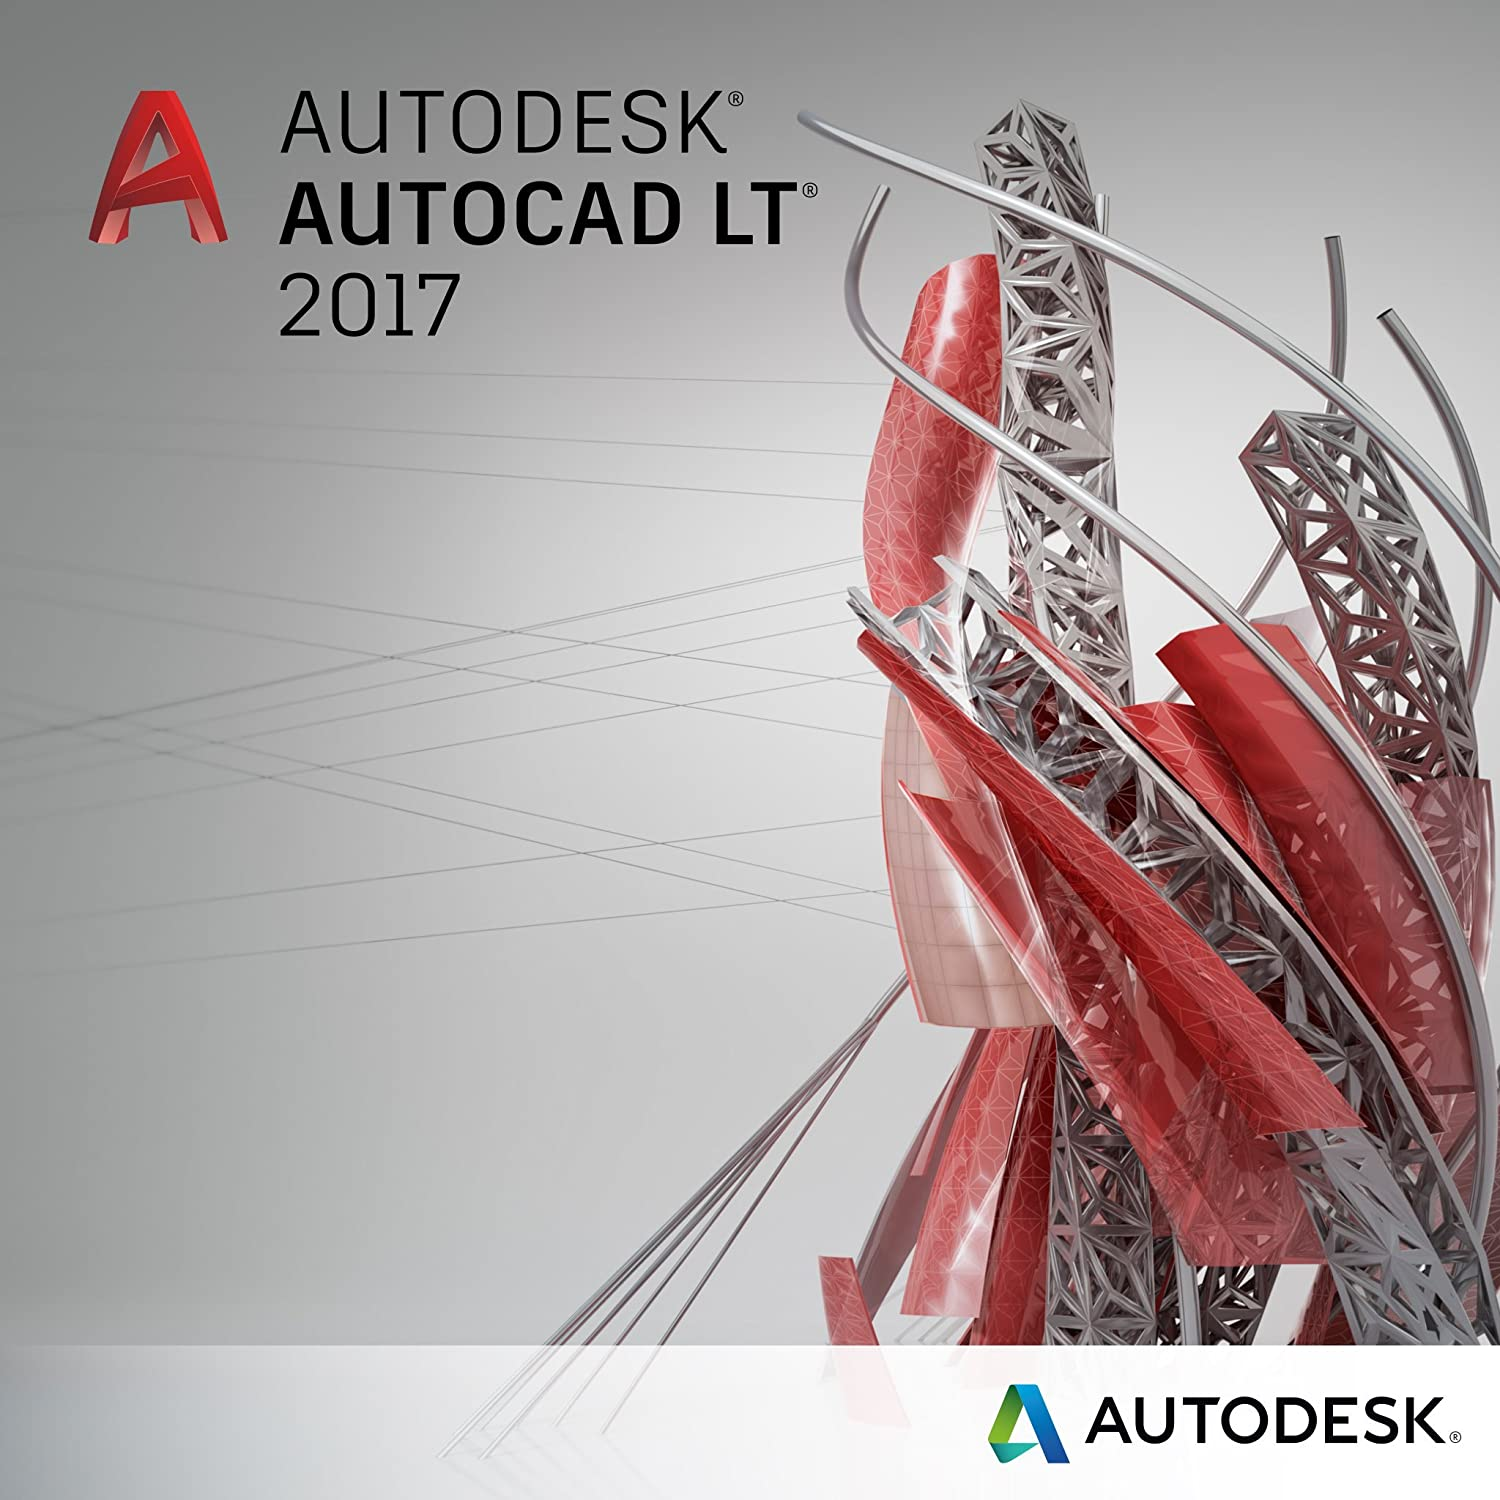 Autodesk AutoCAD LT 2017 Commercial New Single-user ELD Annual Subscription with Advanced Support(最新)|1年契約|オンラインコード版